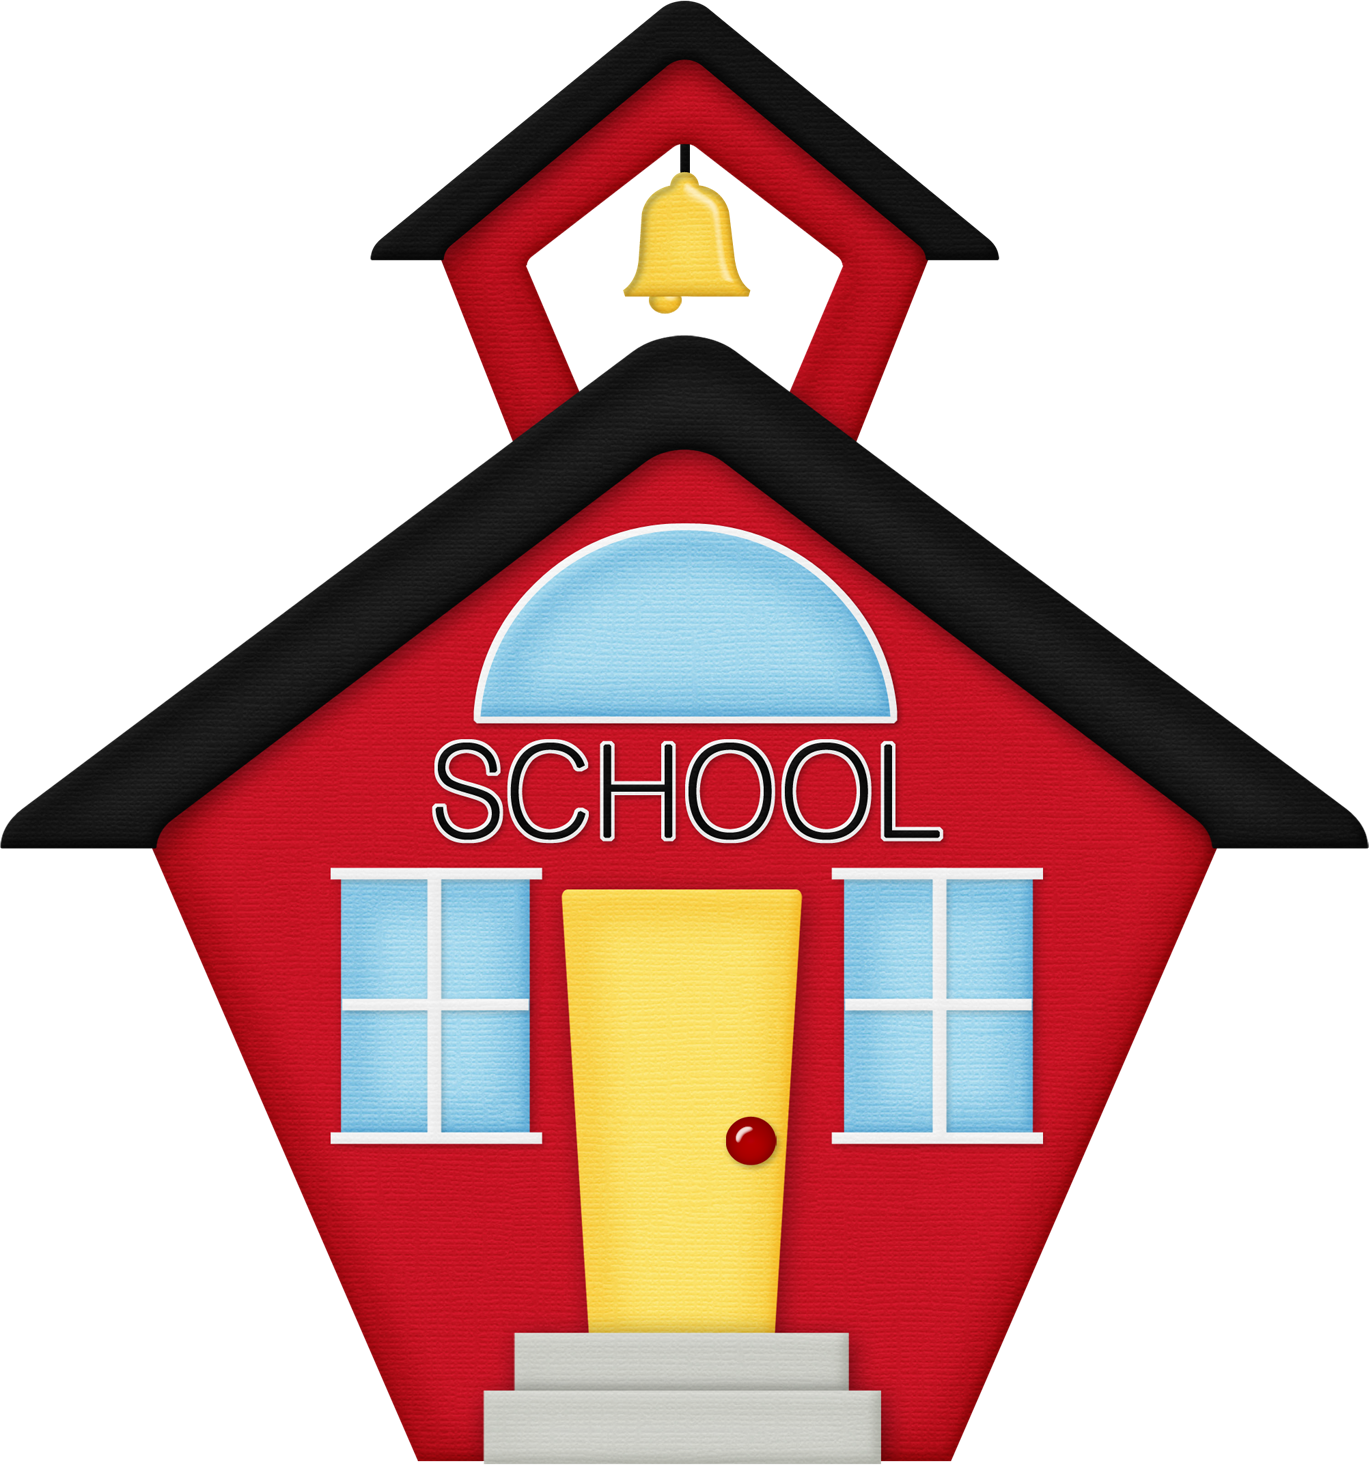 School houses clipart png stock School House Images | Clipart Panda - Free Clipart Images png stock